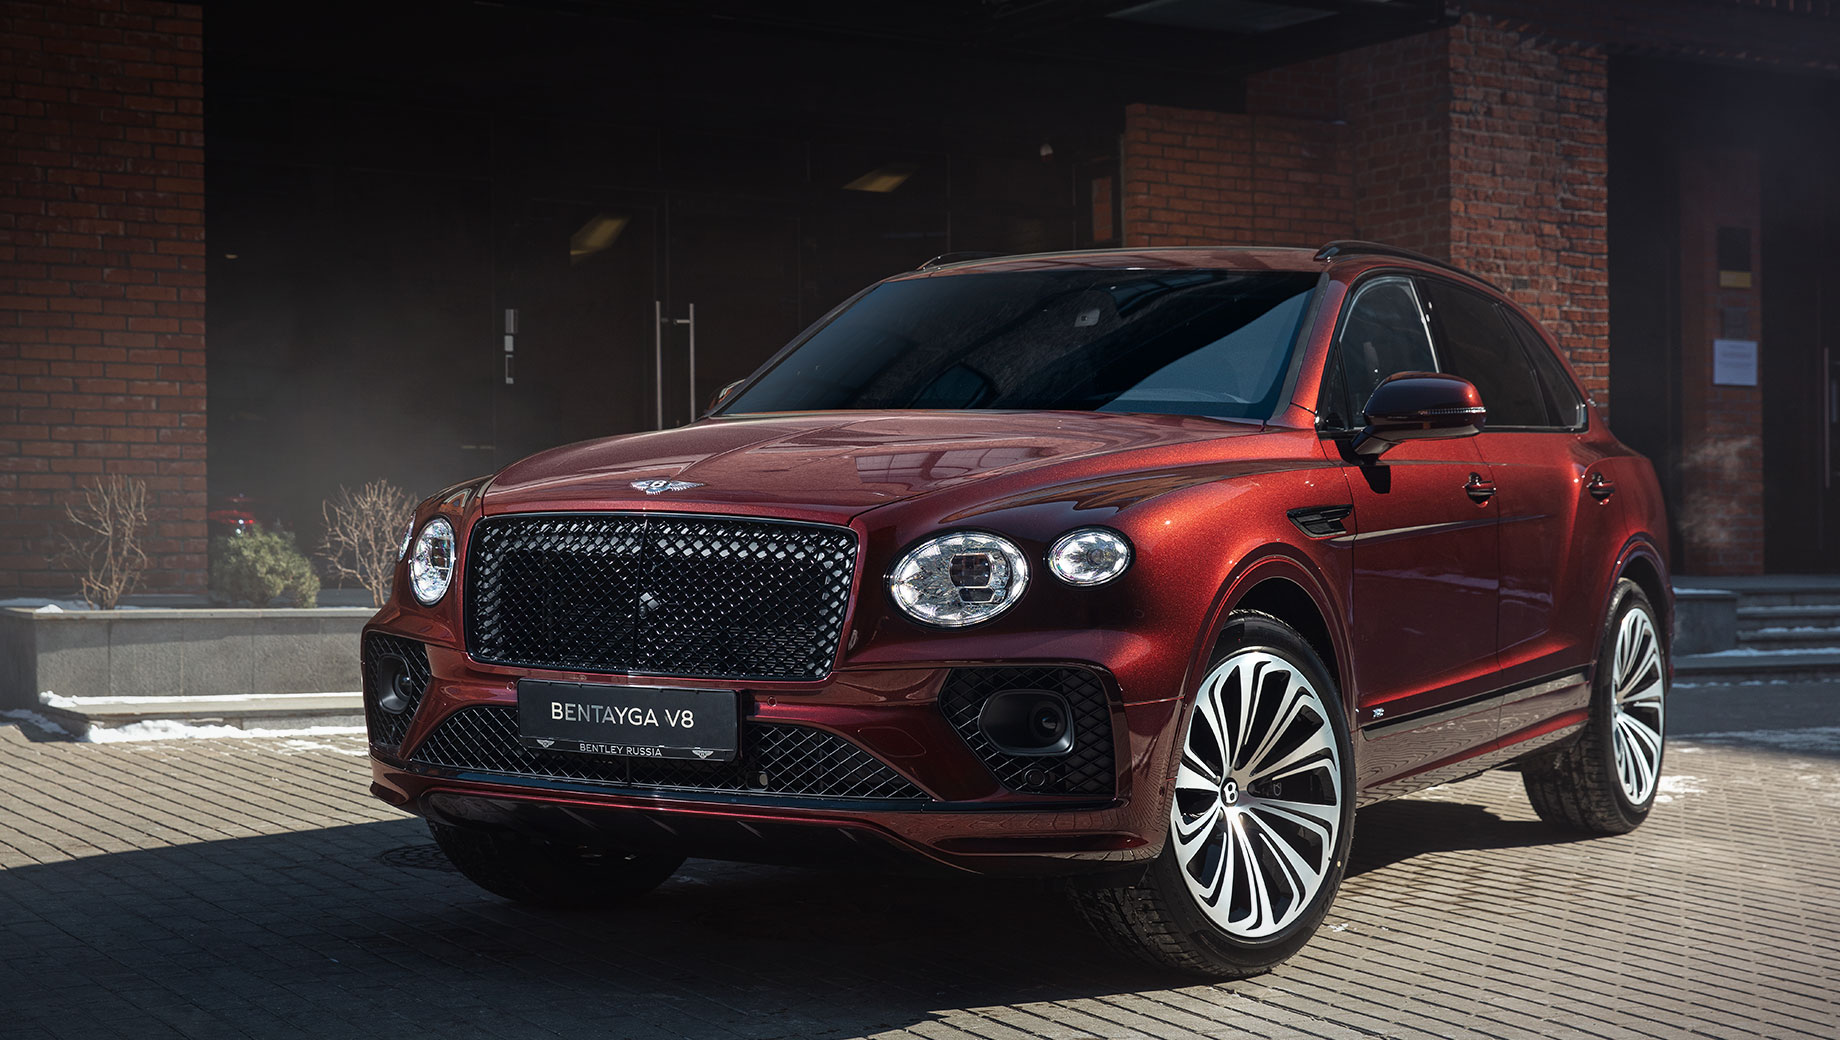 Обновлённая Bentley Bentayga повторно подорожала